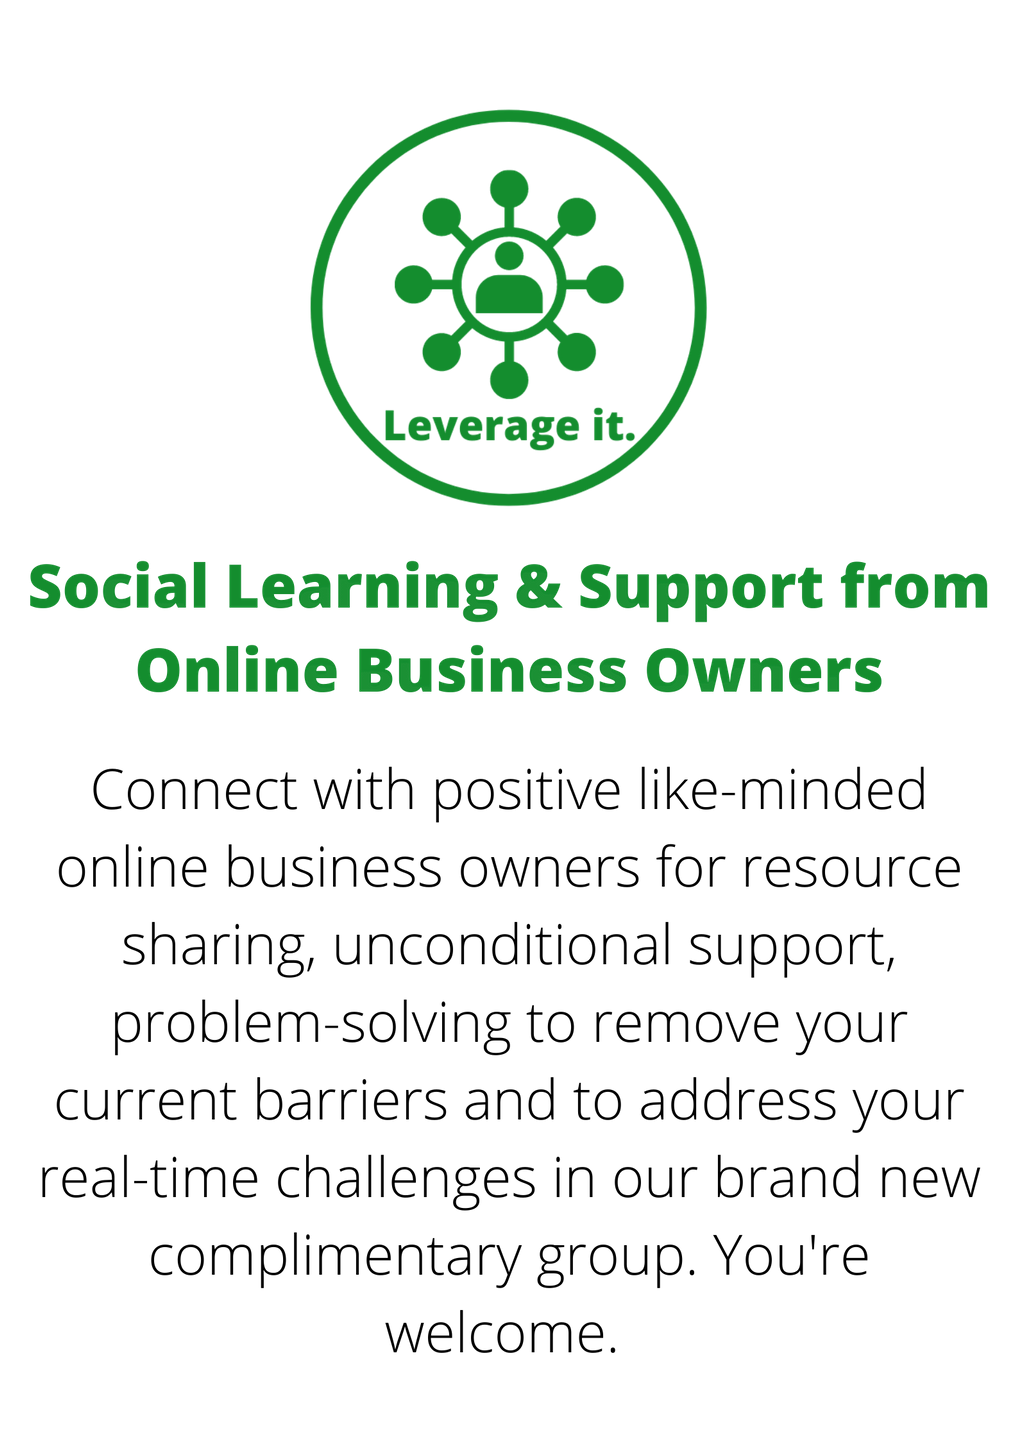 Social Learning & Support from Online Business Owners